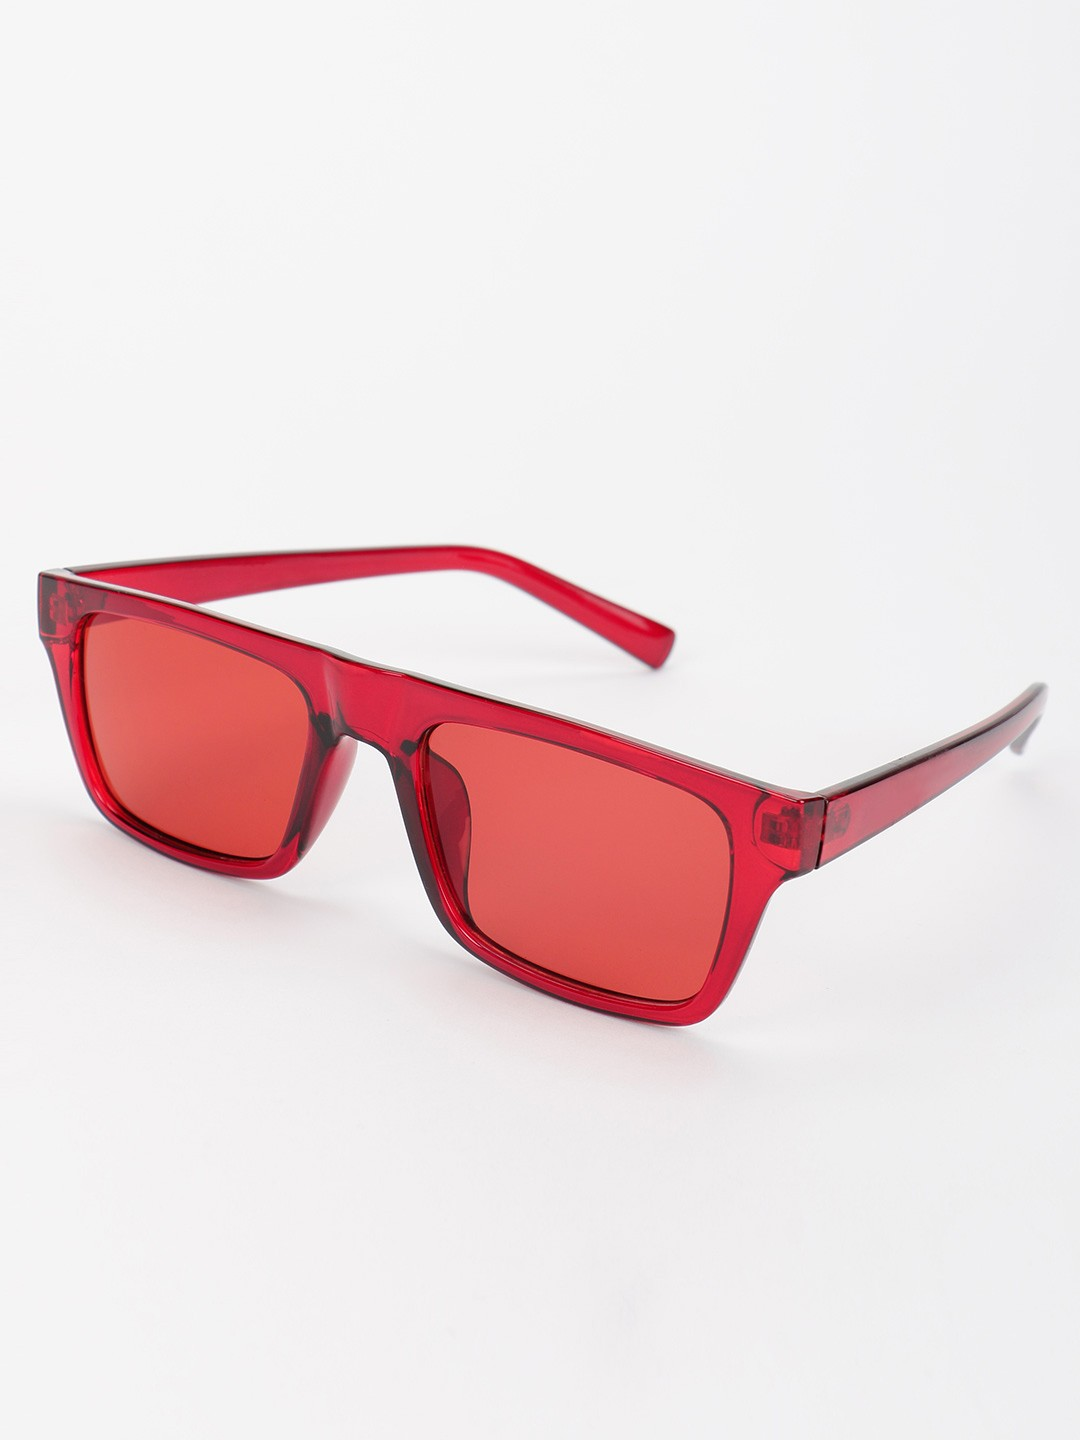 Pataaka Red Coloured Tinted Lens Square Sunglasses 1